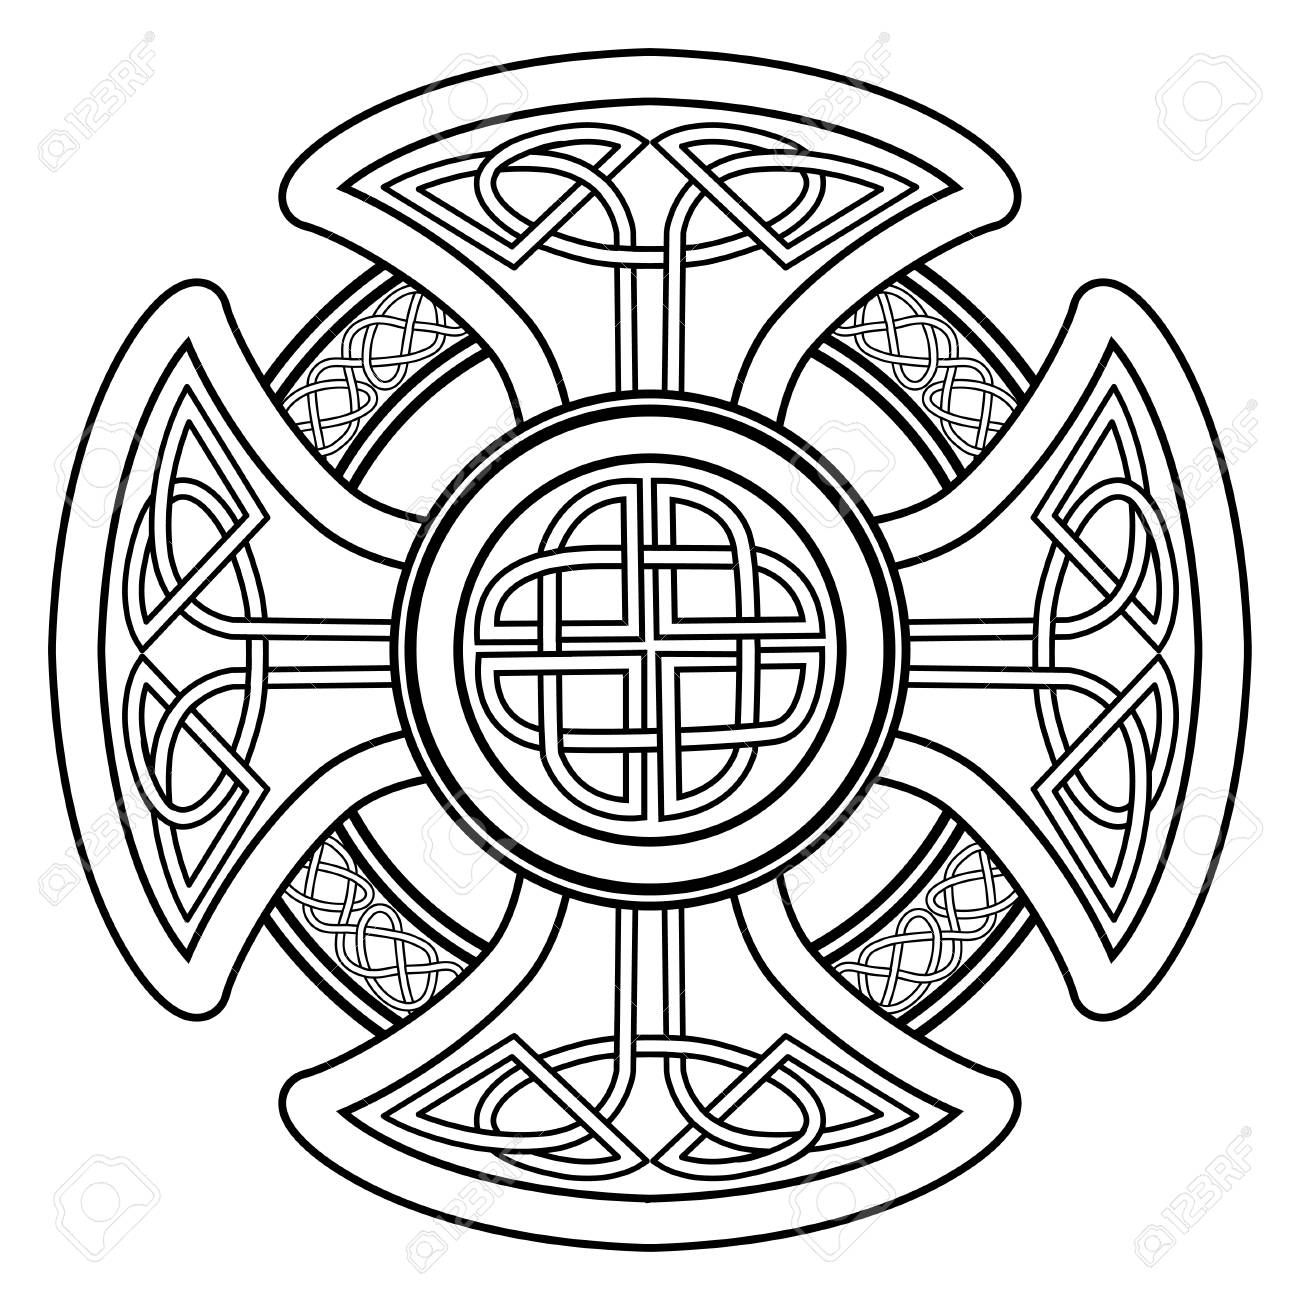 Isolated Celtic Cross From National Scandinavian Ornament. Symbol Of  Druids, Ireland And Scotland Stock